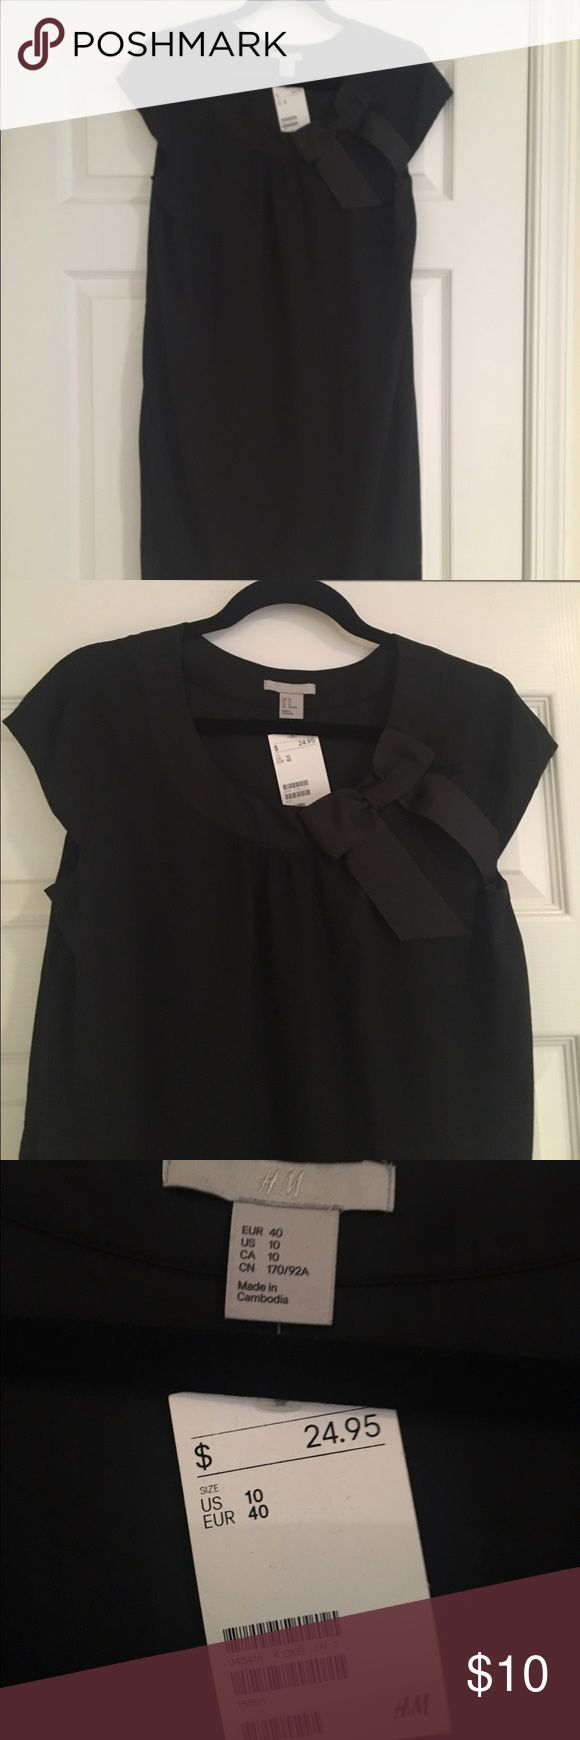 H&M black shift dress. NEW WITH TAGS Satin-y black shift dress! Cute silly bow and neckline! Size 10, no give or stretch. NEW WITH TAGS H&M Dresses